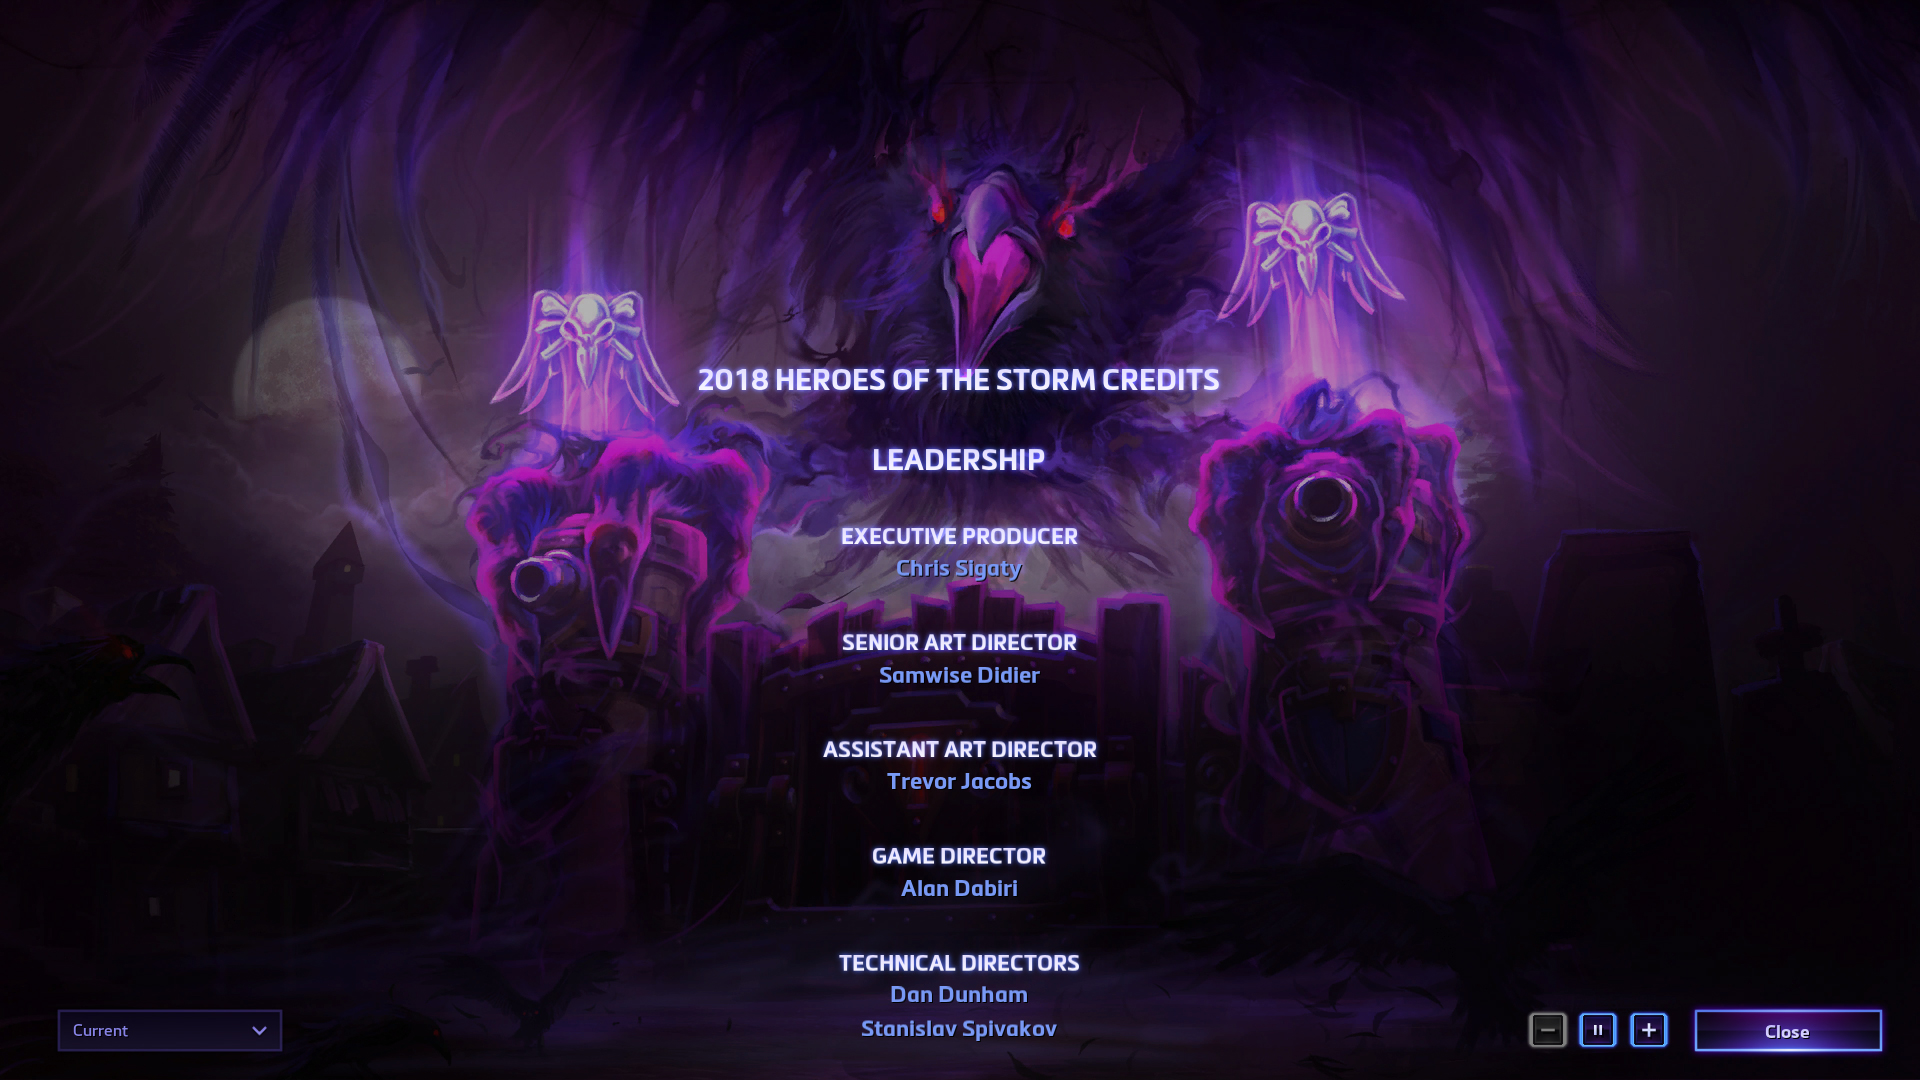 heroes-of-the-storm-game-credits